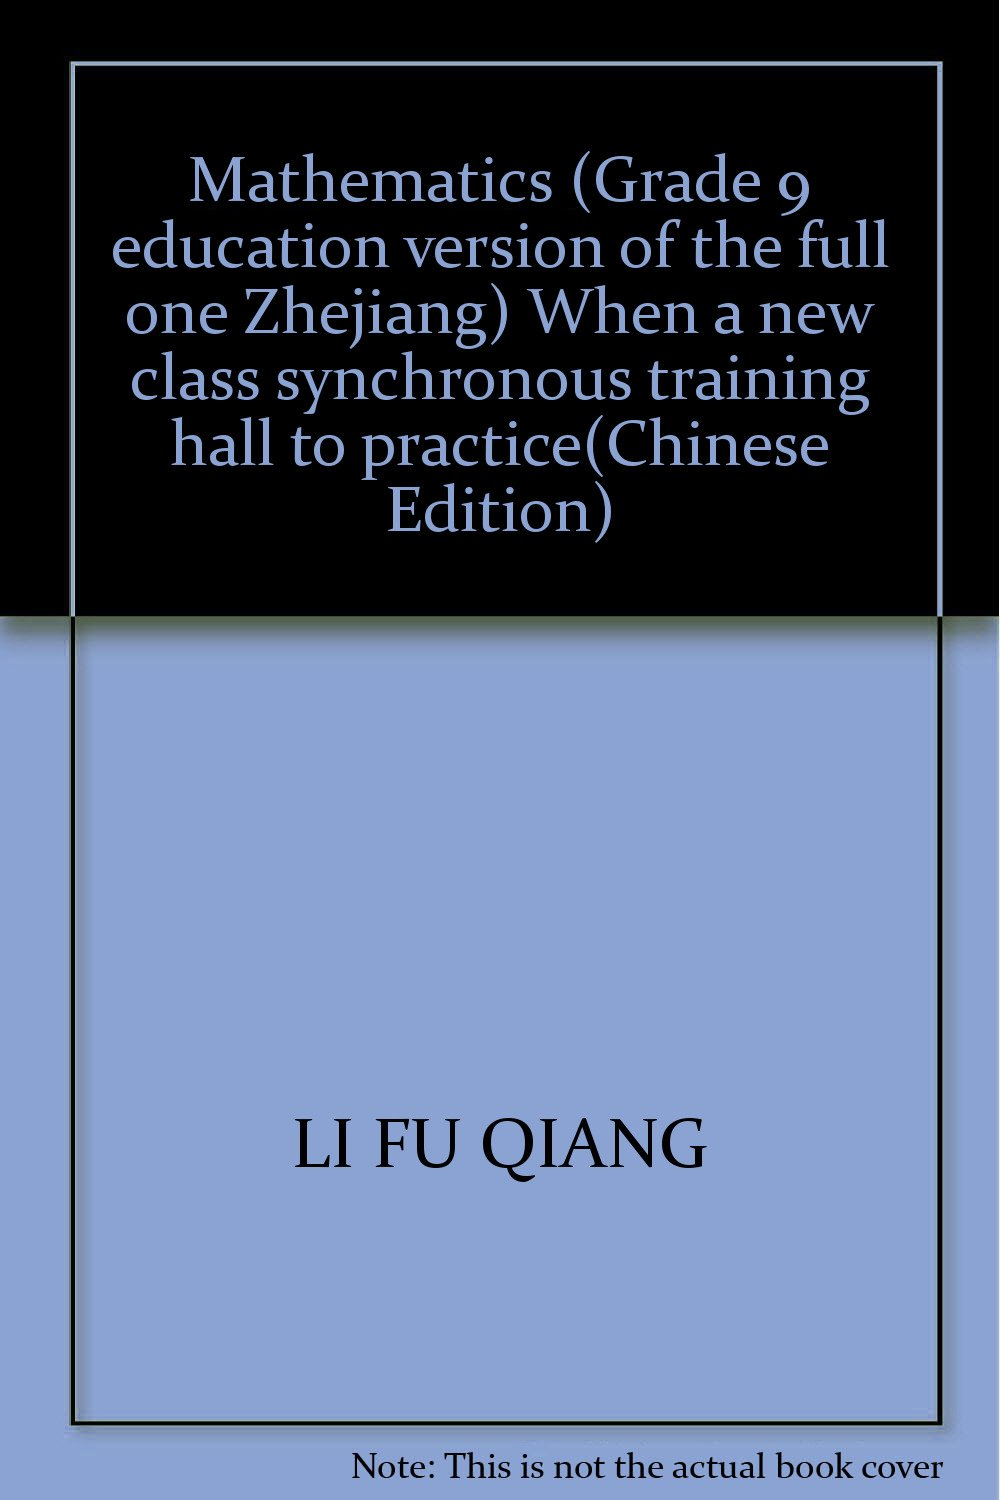 Download Mathematics (Grade 9 education version of the full one Zhejiang) When a new class synchronous training hall to practice(Chinese Edition) ebook